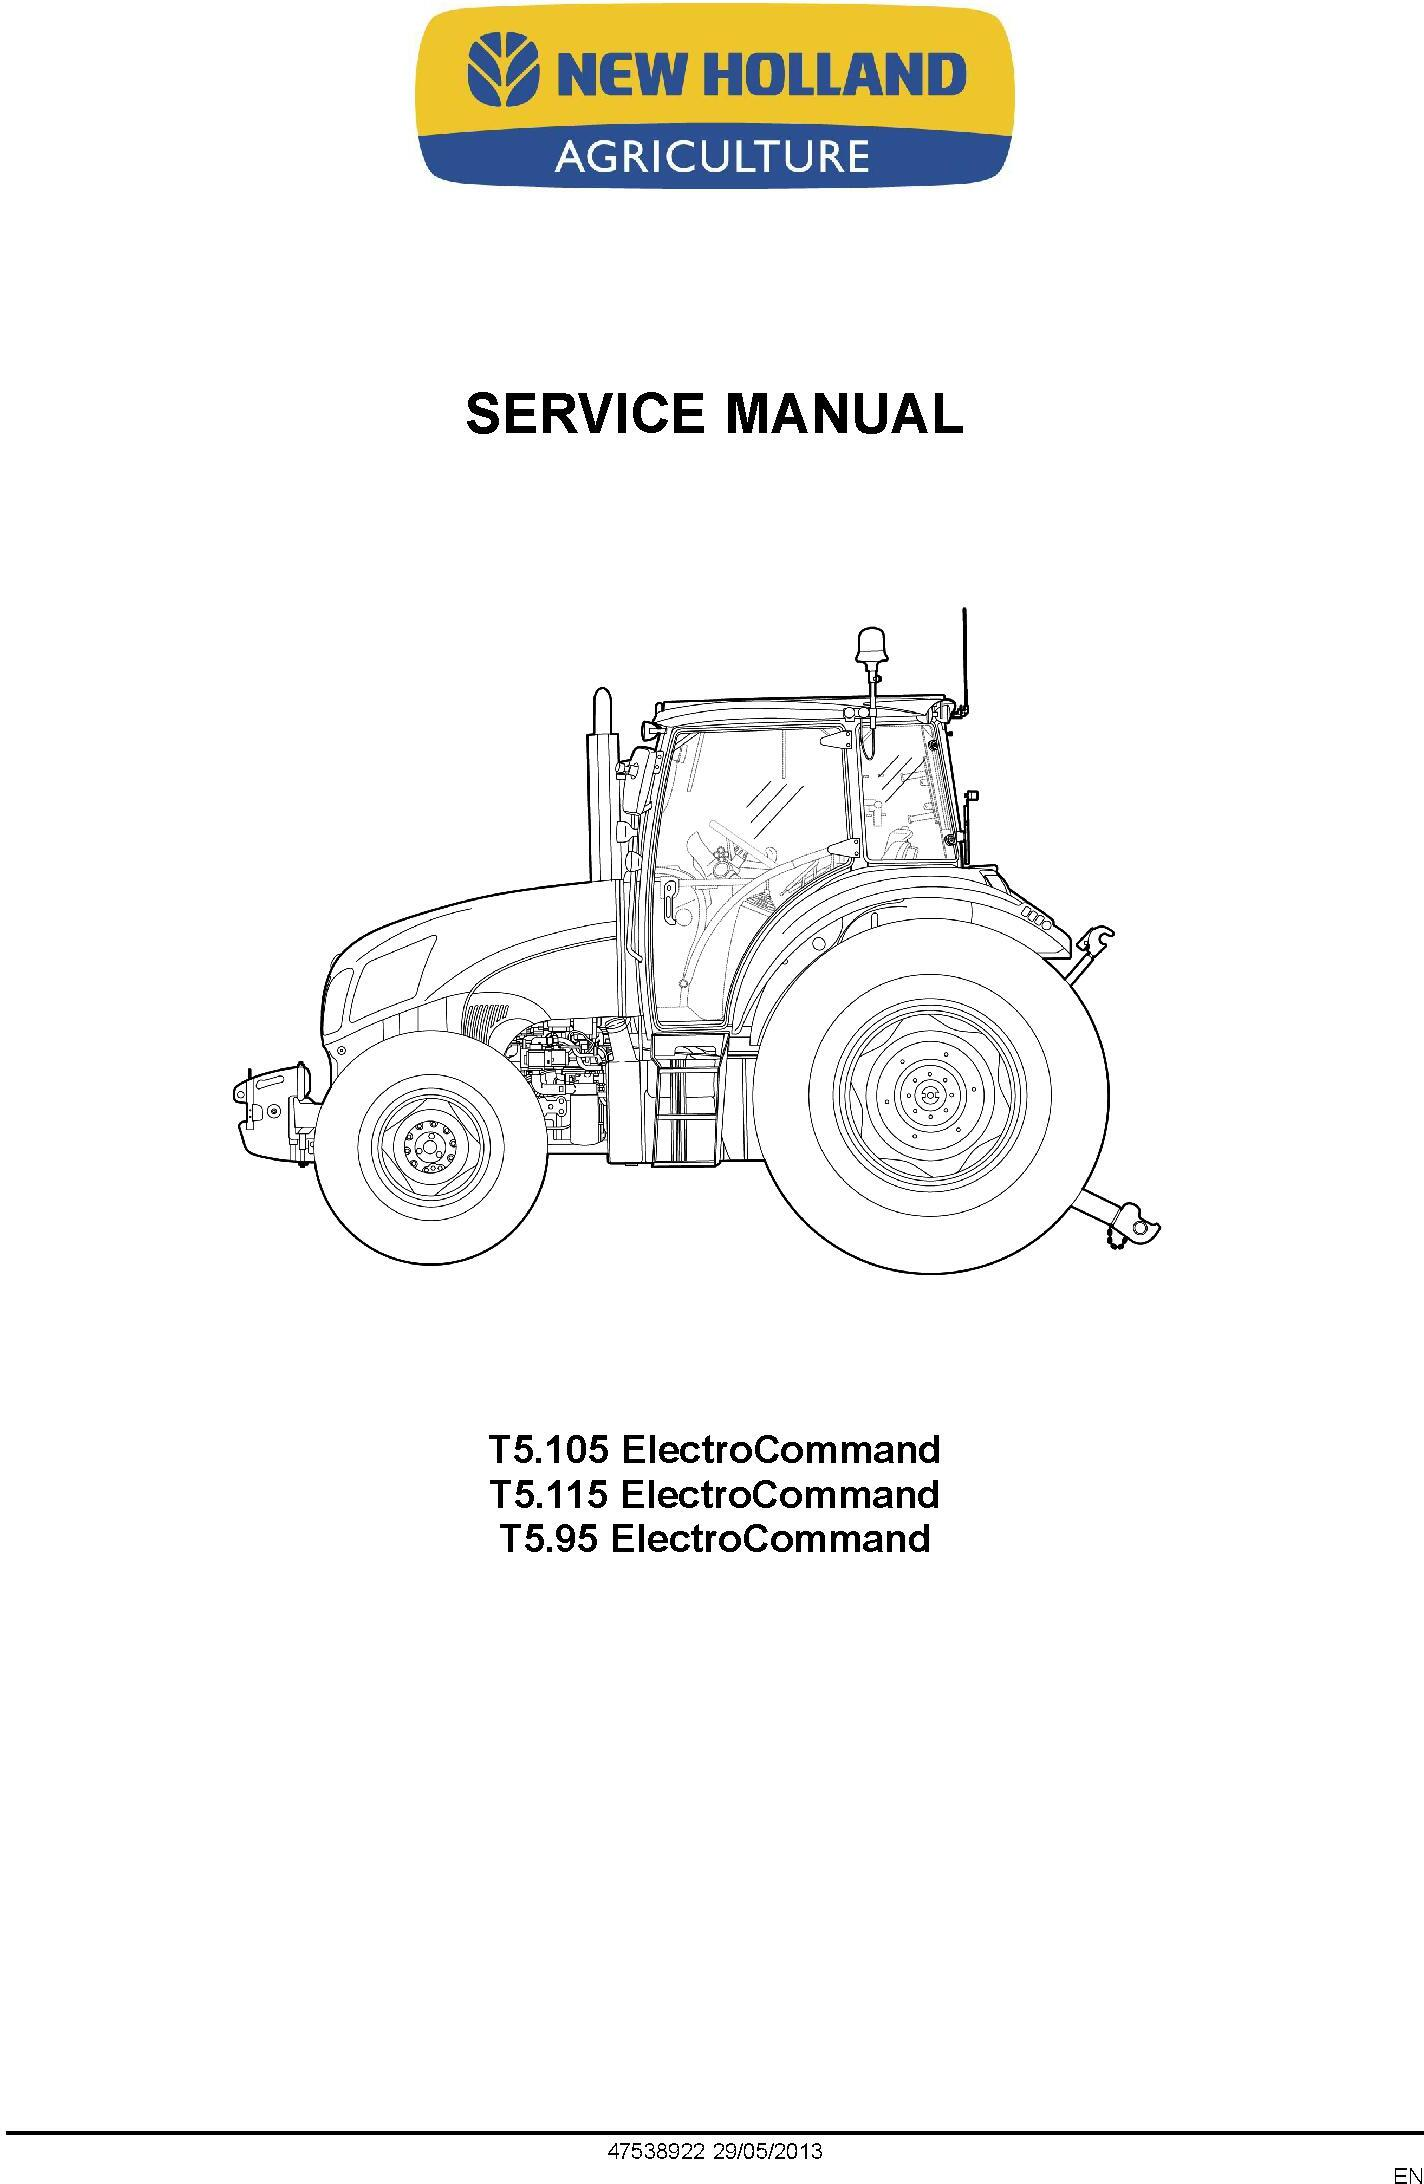 New Holland T5.95, T5.105, T5.115 Electro Command Tractor Service Manual - 1